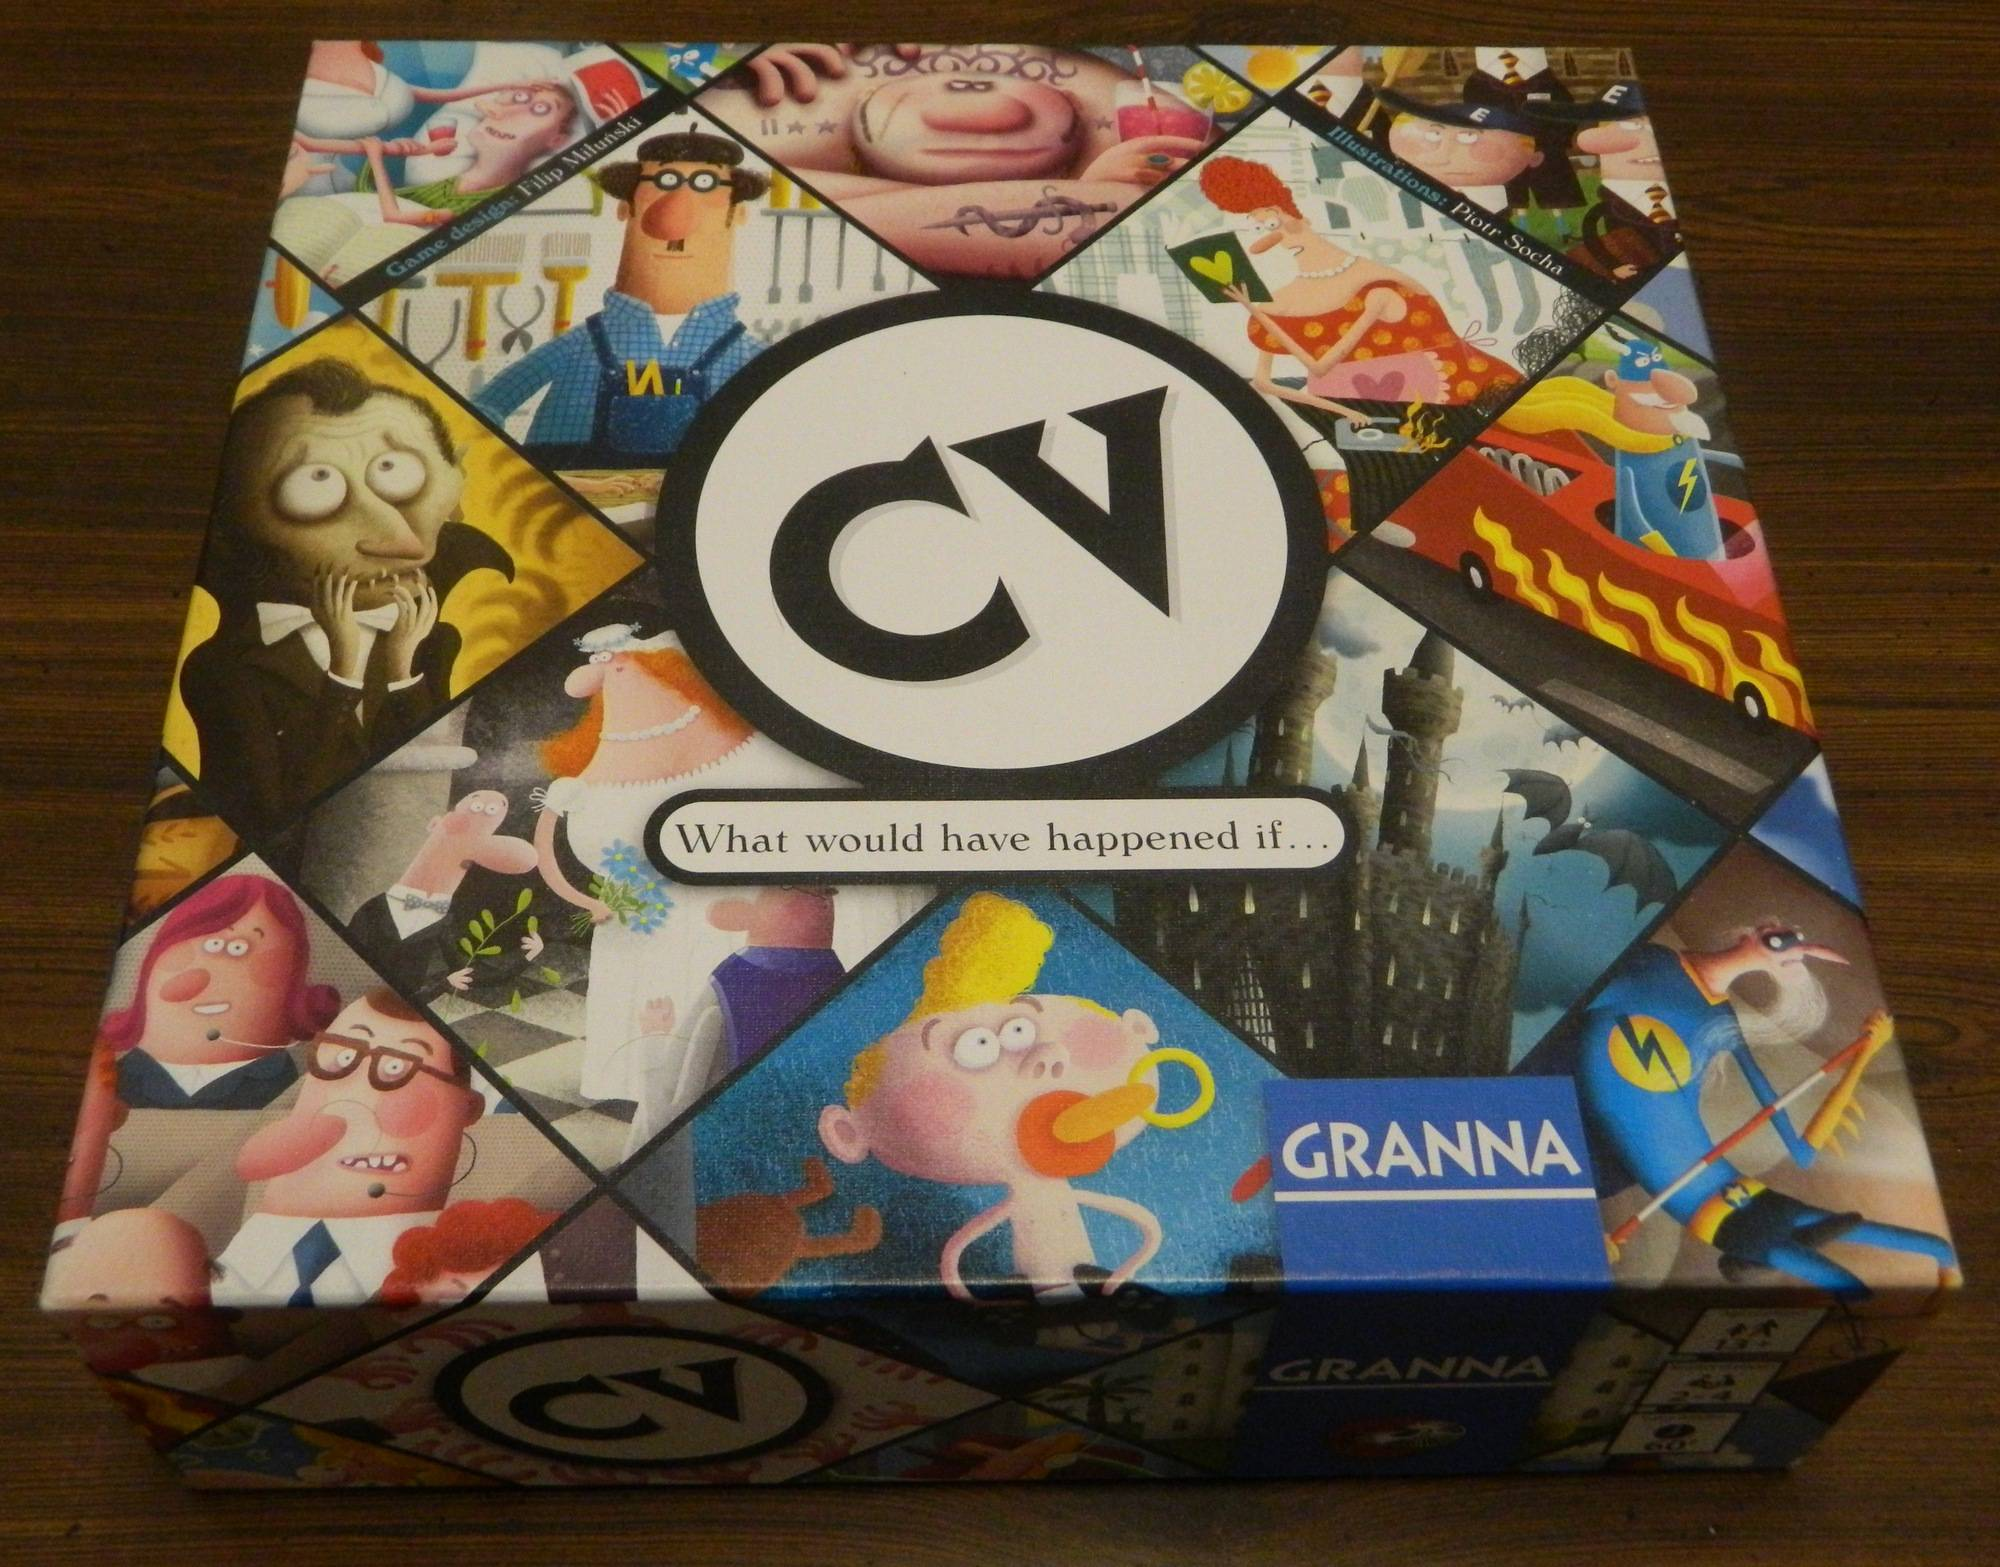 cv dice game review and rules